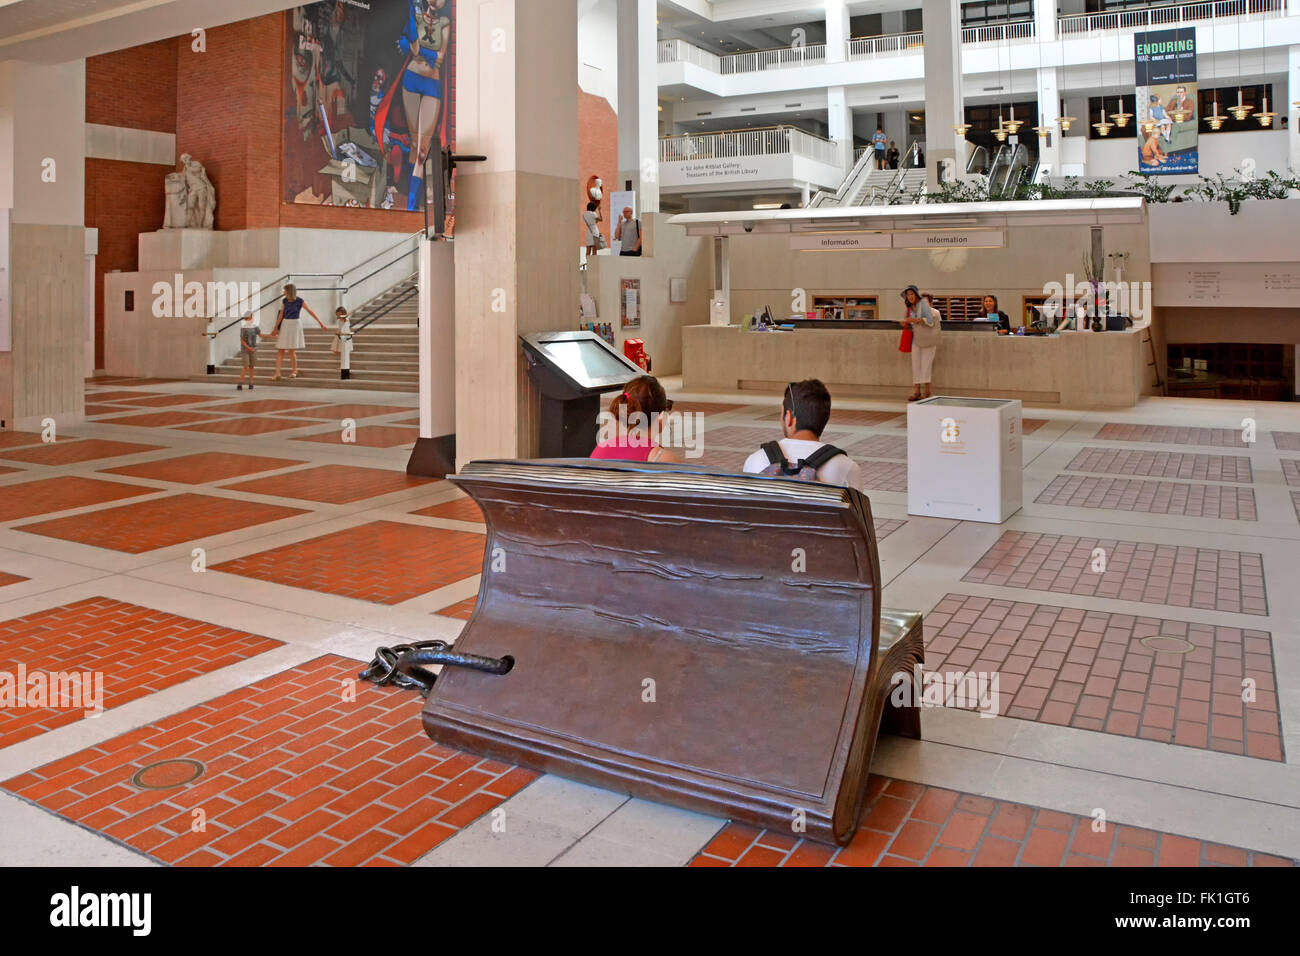 British Library Interior Main Entrance Foyer And Information Desk Inside The National Of United